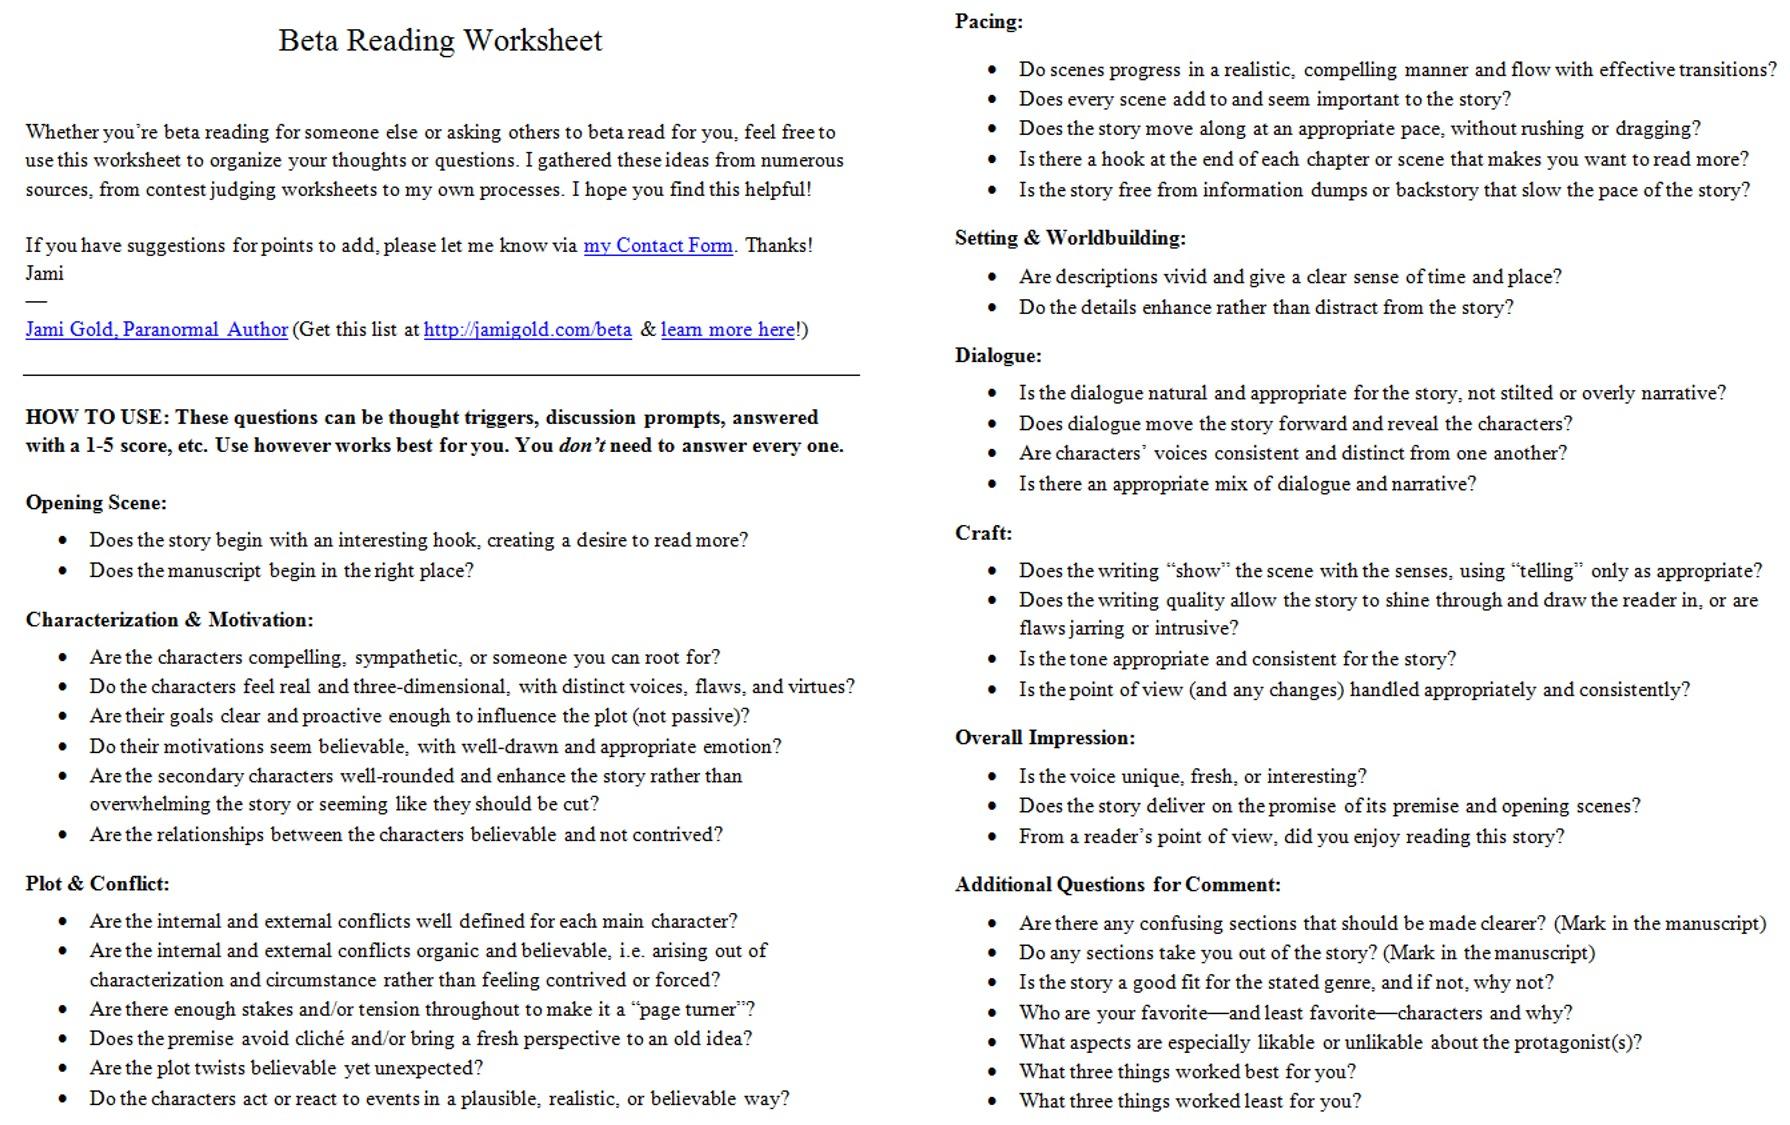 Aldiablosus  Gorgeous Worksheets For Writers  Jami Gold Paranormal Author With Magnificent Screen Shot Of The Twopage Beta Reading Worksheet With Amazing Graphing Inequalities On A Number Line Worksheet Also Equation Worksheets In Addition Which Law Worksheet And The Great Gatsby Character Worksheet As Well As Proving Triangles Congruent Worksheet Additionally Ordered Pairs Worksheet From Jamigoldcom With Aldiablosus  Magnificent Worksheets For Writers  Jami Gold Paranormal Author With Amazing Screen Shot Of The Twopage Beta Reading Worksheet And Gorgeous Graphing Inequalities On A Number Line Worksheet Also Equation Worksheets In Addition Which Law Worksheet From Jamigoldcom